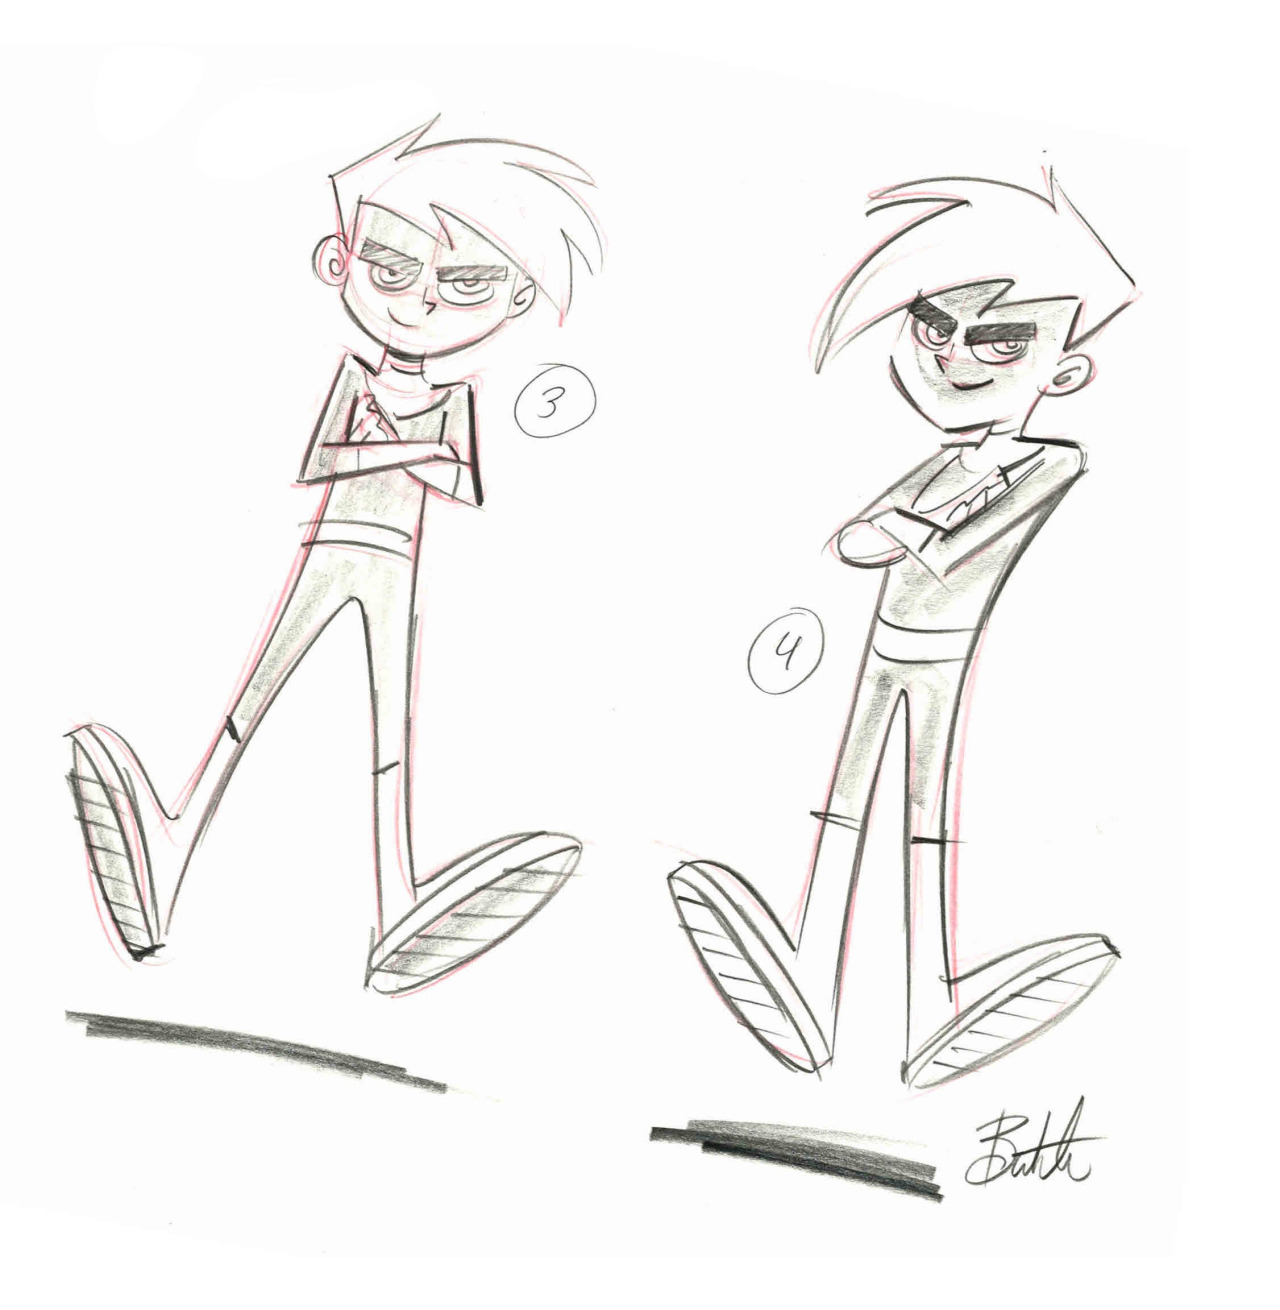 Image and information are the intellectual property of Butch Hartman. Retrieved from: http://butchhartman.tumblr.com Danny concept poses, 2001